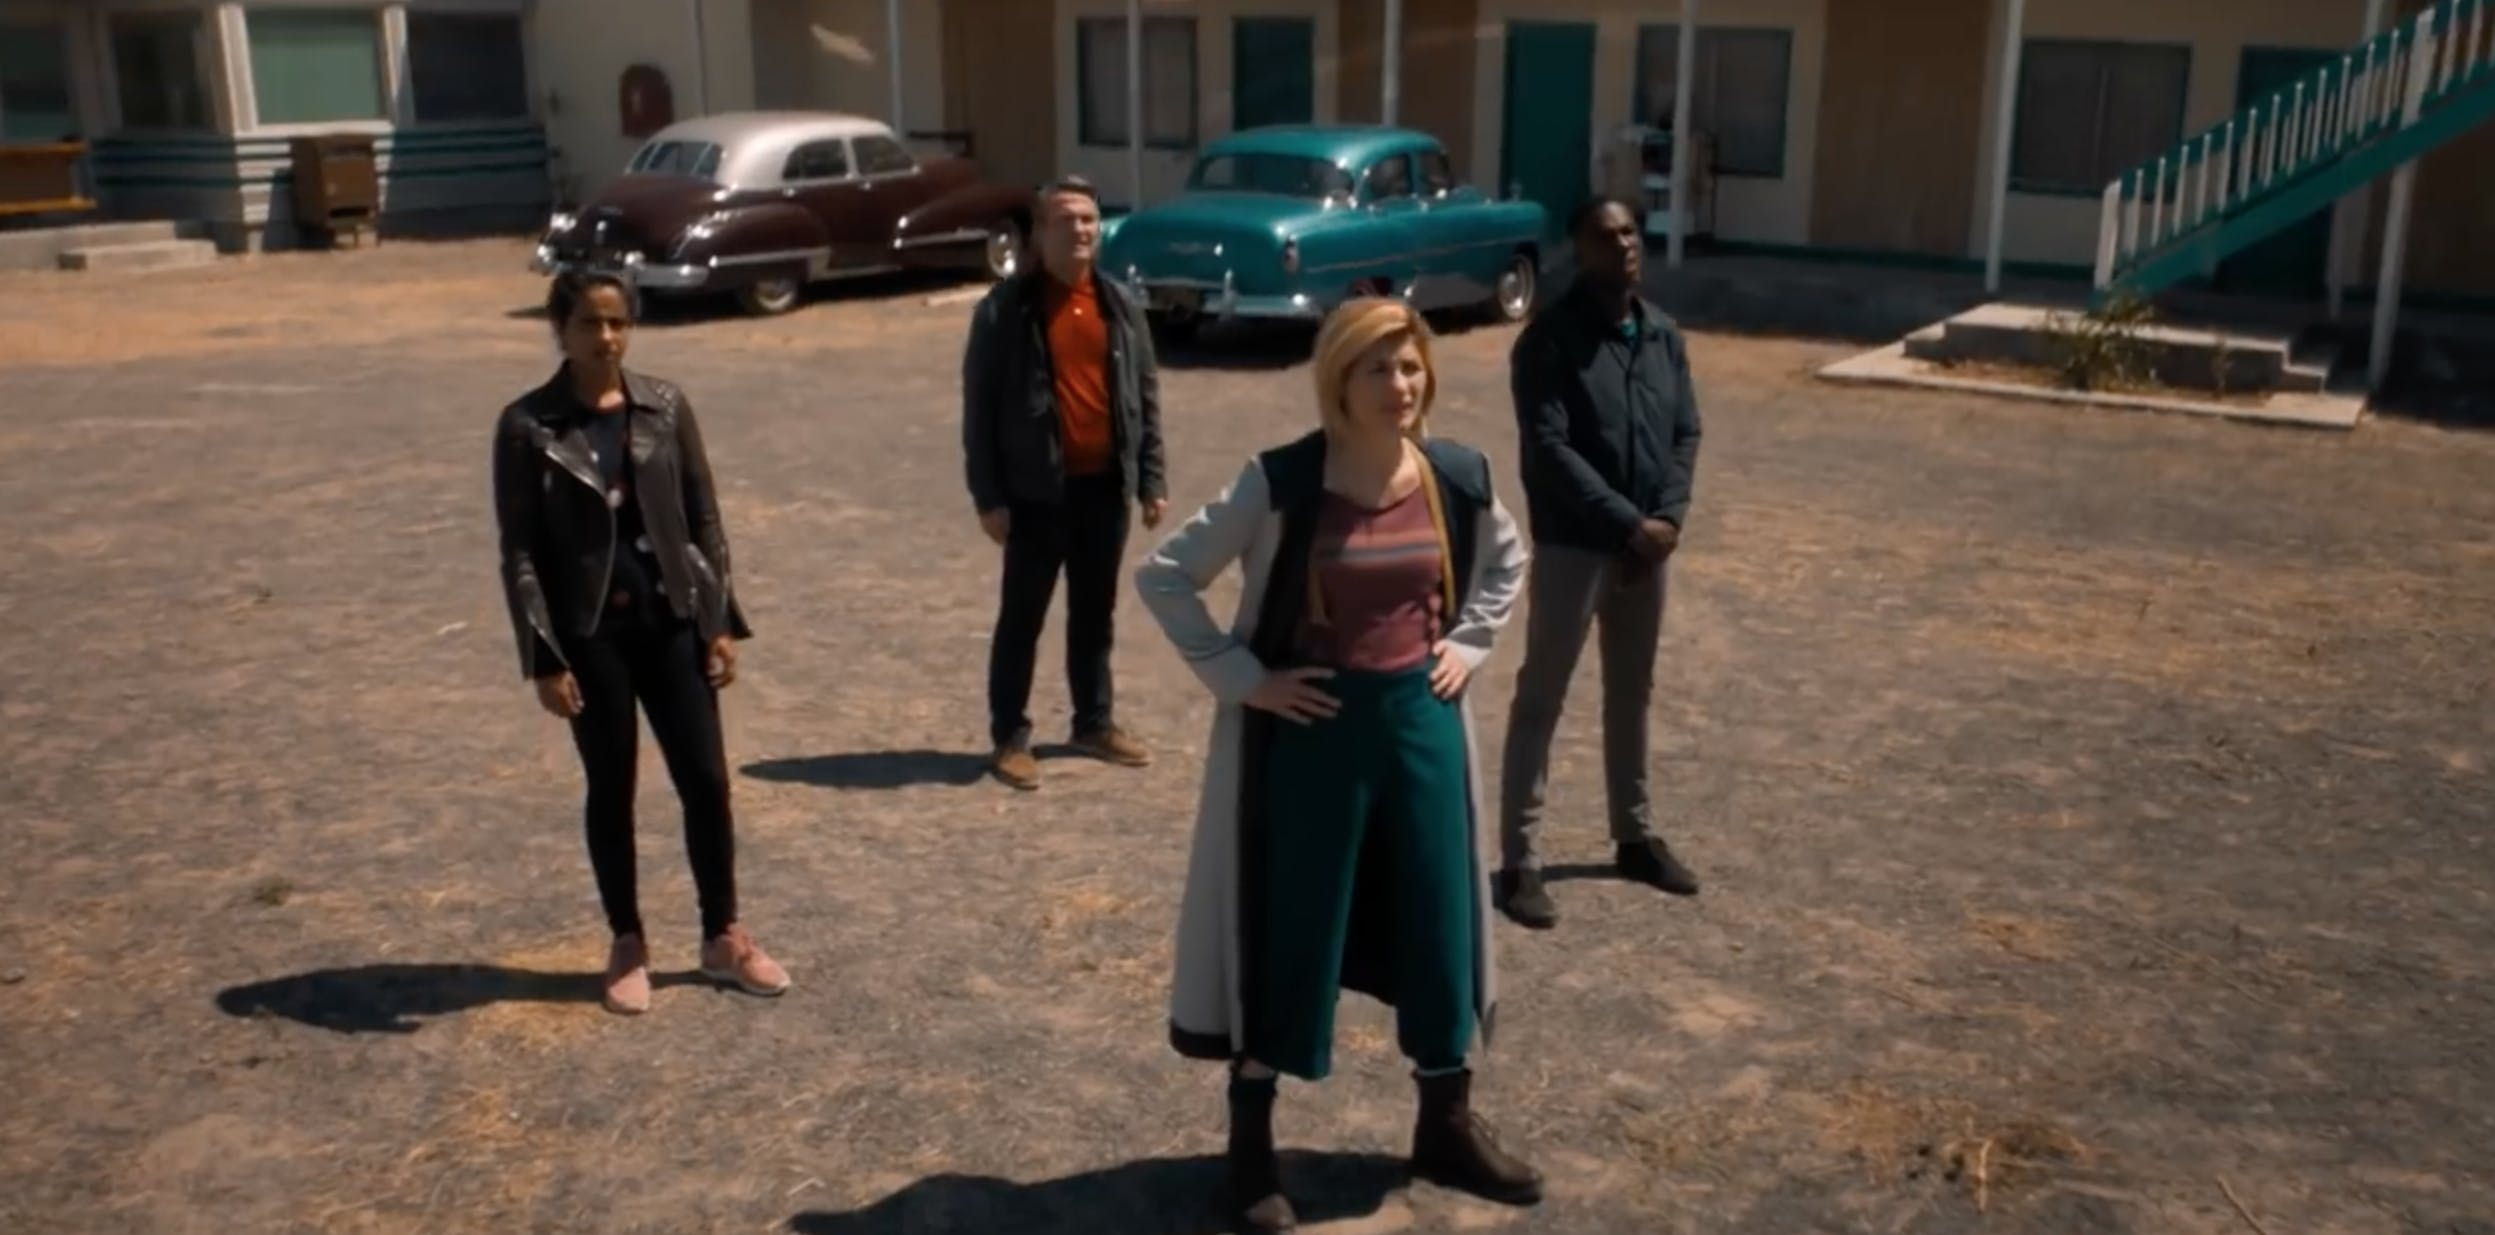 A still from the new BBC series of Doctor Who starring Jodie Whittaker, Bradley Walsh, Tosin Cole and Mandip Gill